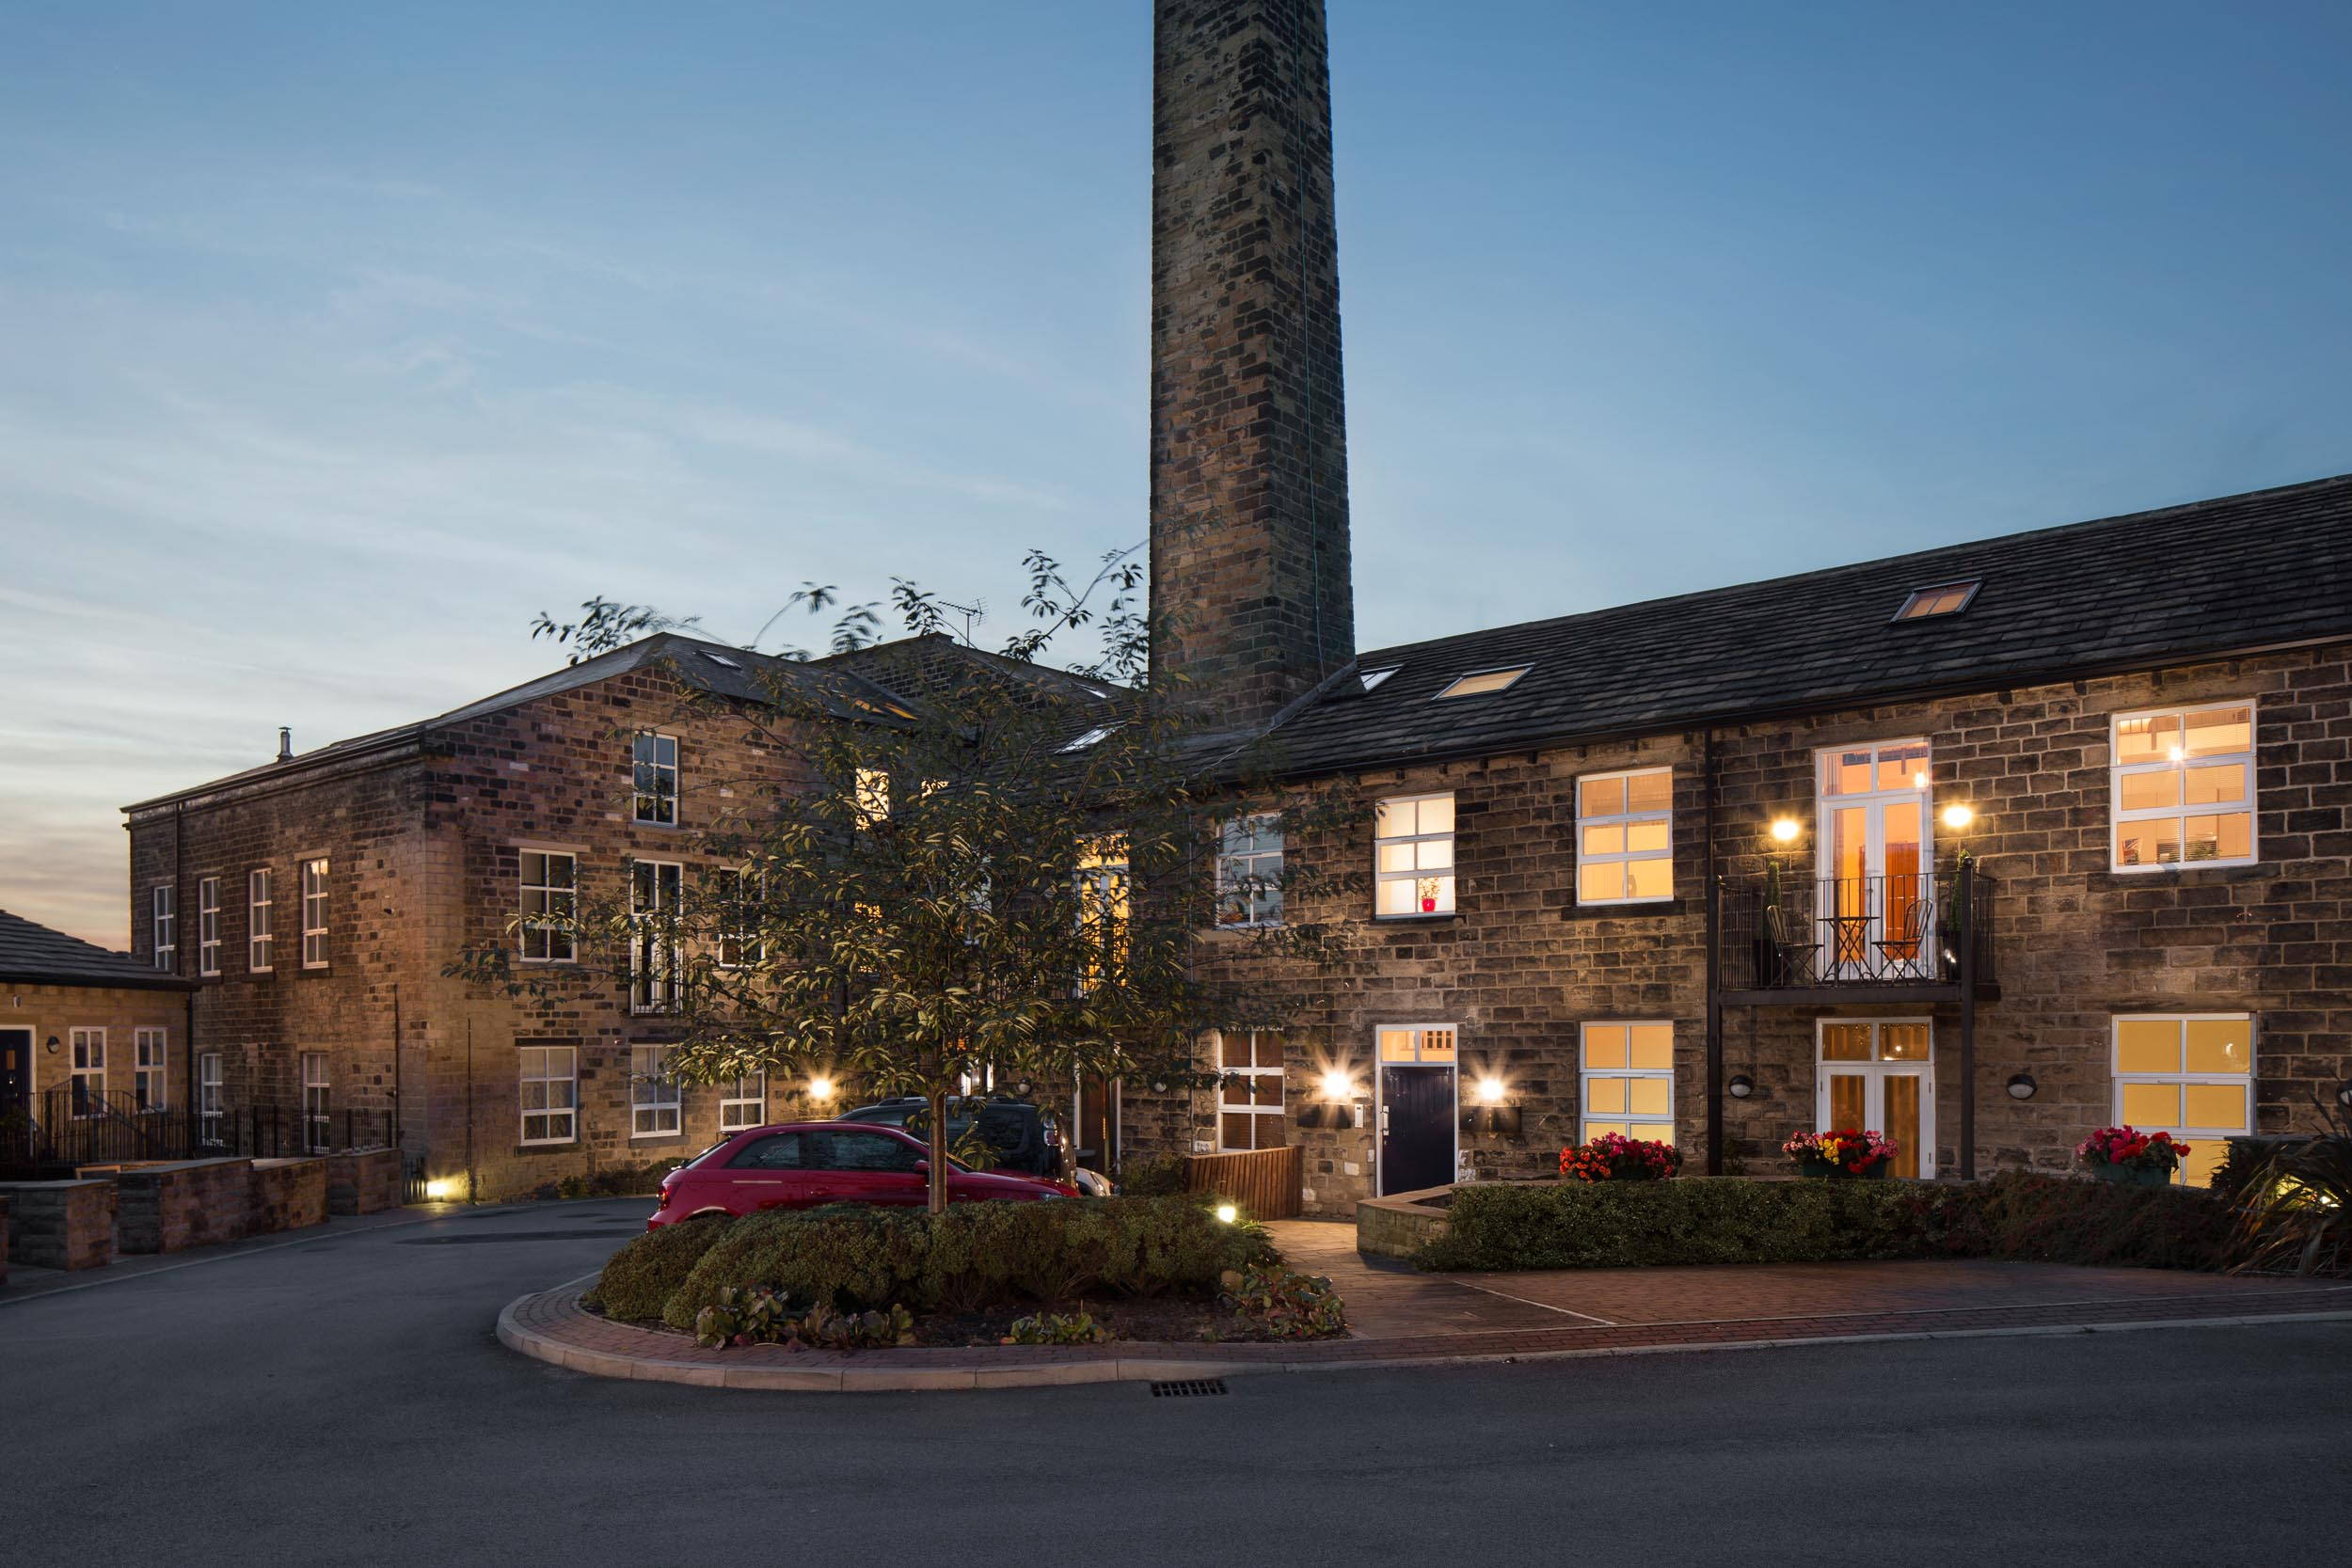 airedale mills bingley twilight exterior after.jpg